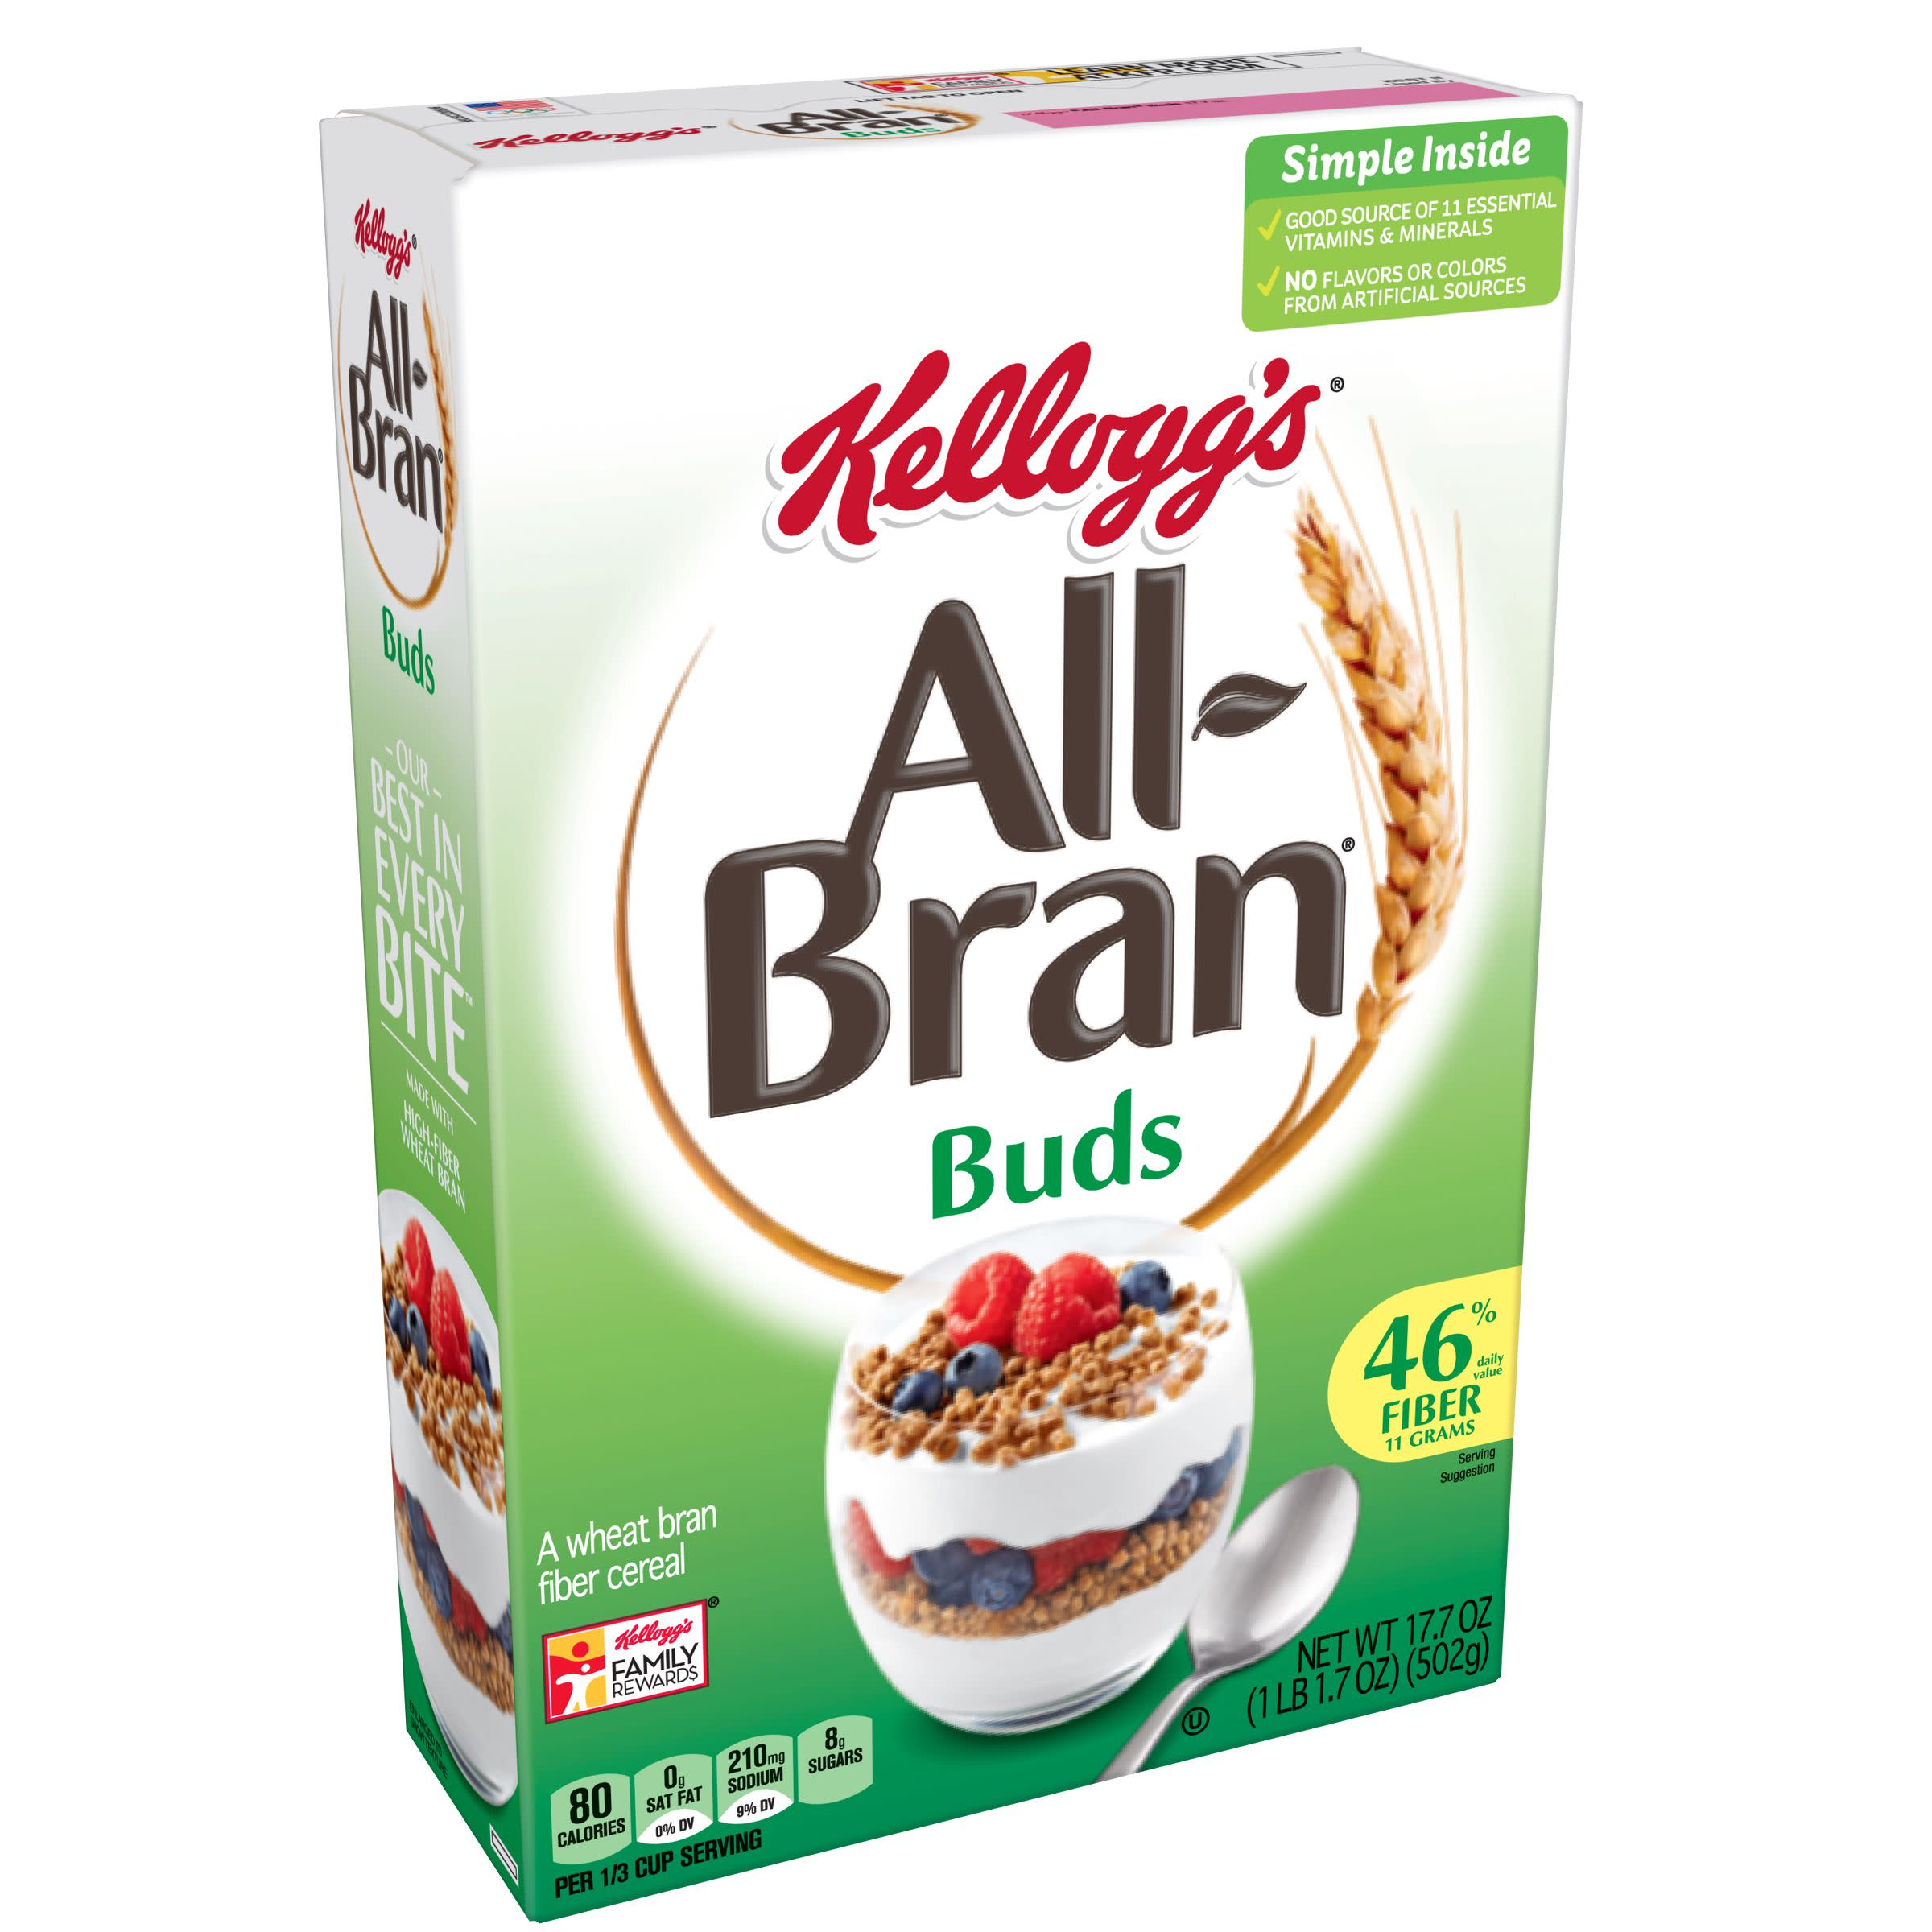 Kellogg's All-Bran Buds, Breakfast Cereal, Wheat Bran, 17.7 oz